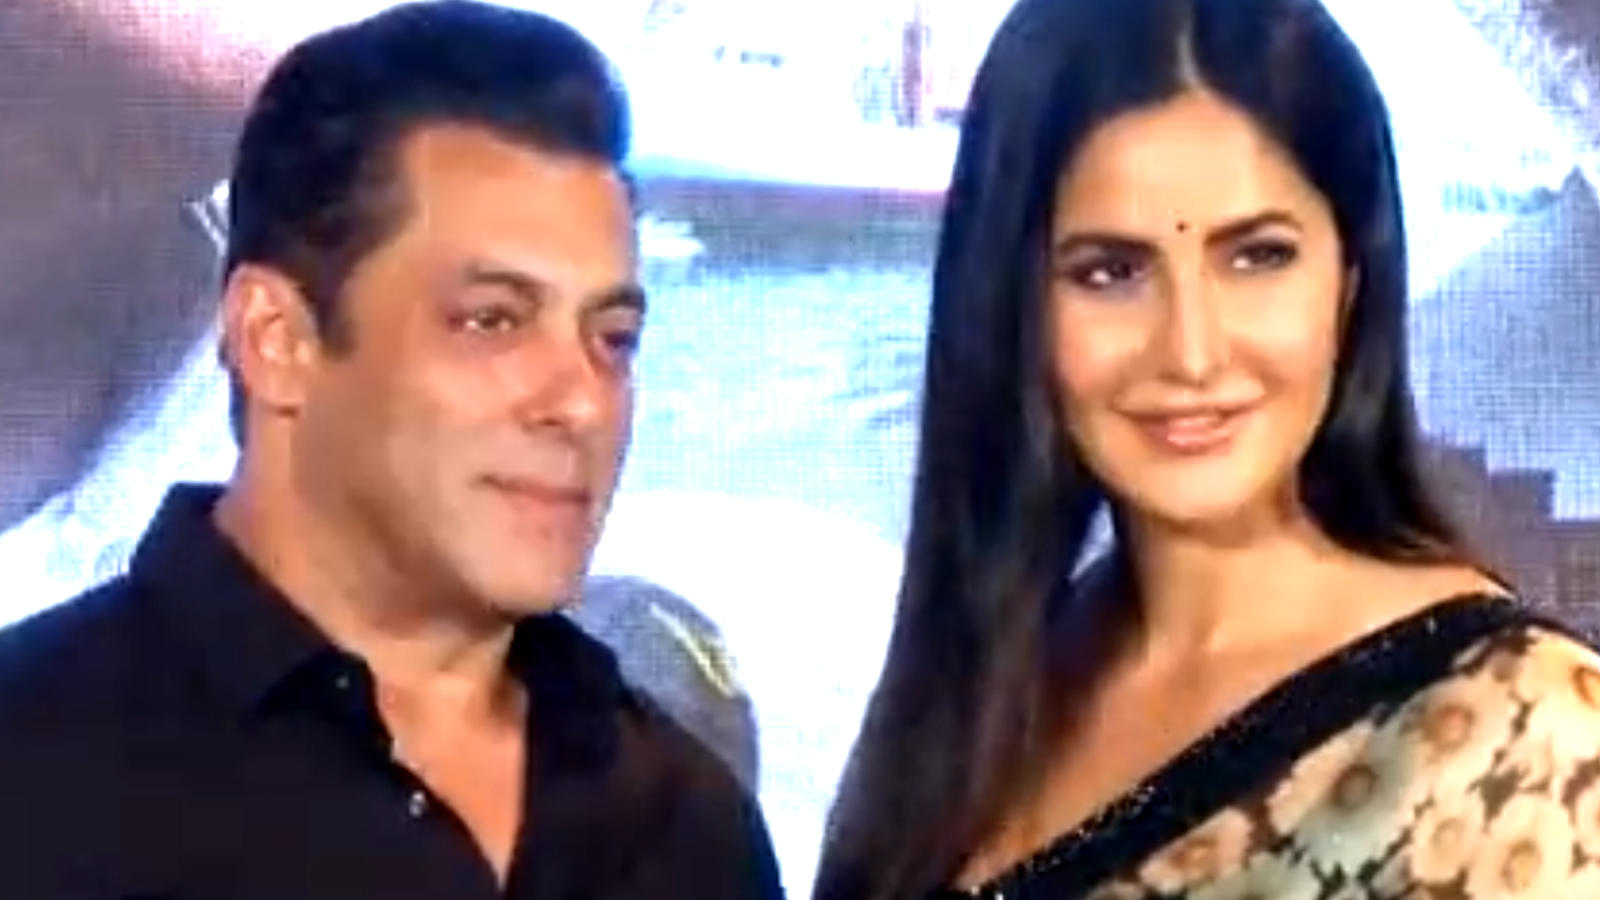 Salman Khan and Katrina Kaif starrer 'Bharat' earns over Rs 73 crore in 2 days